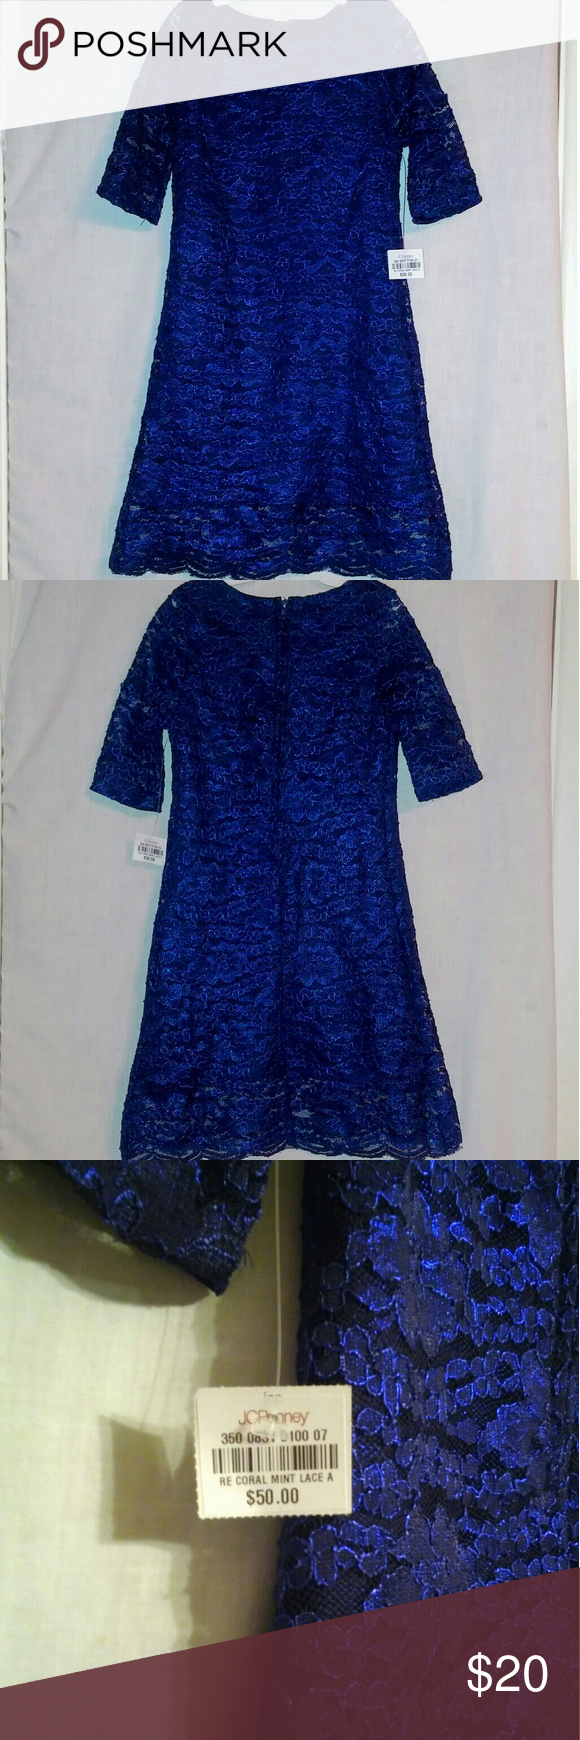 Rare editions girls size navy blue lace dress boutique navy